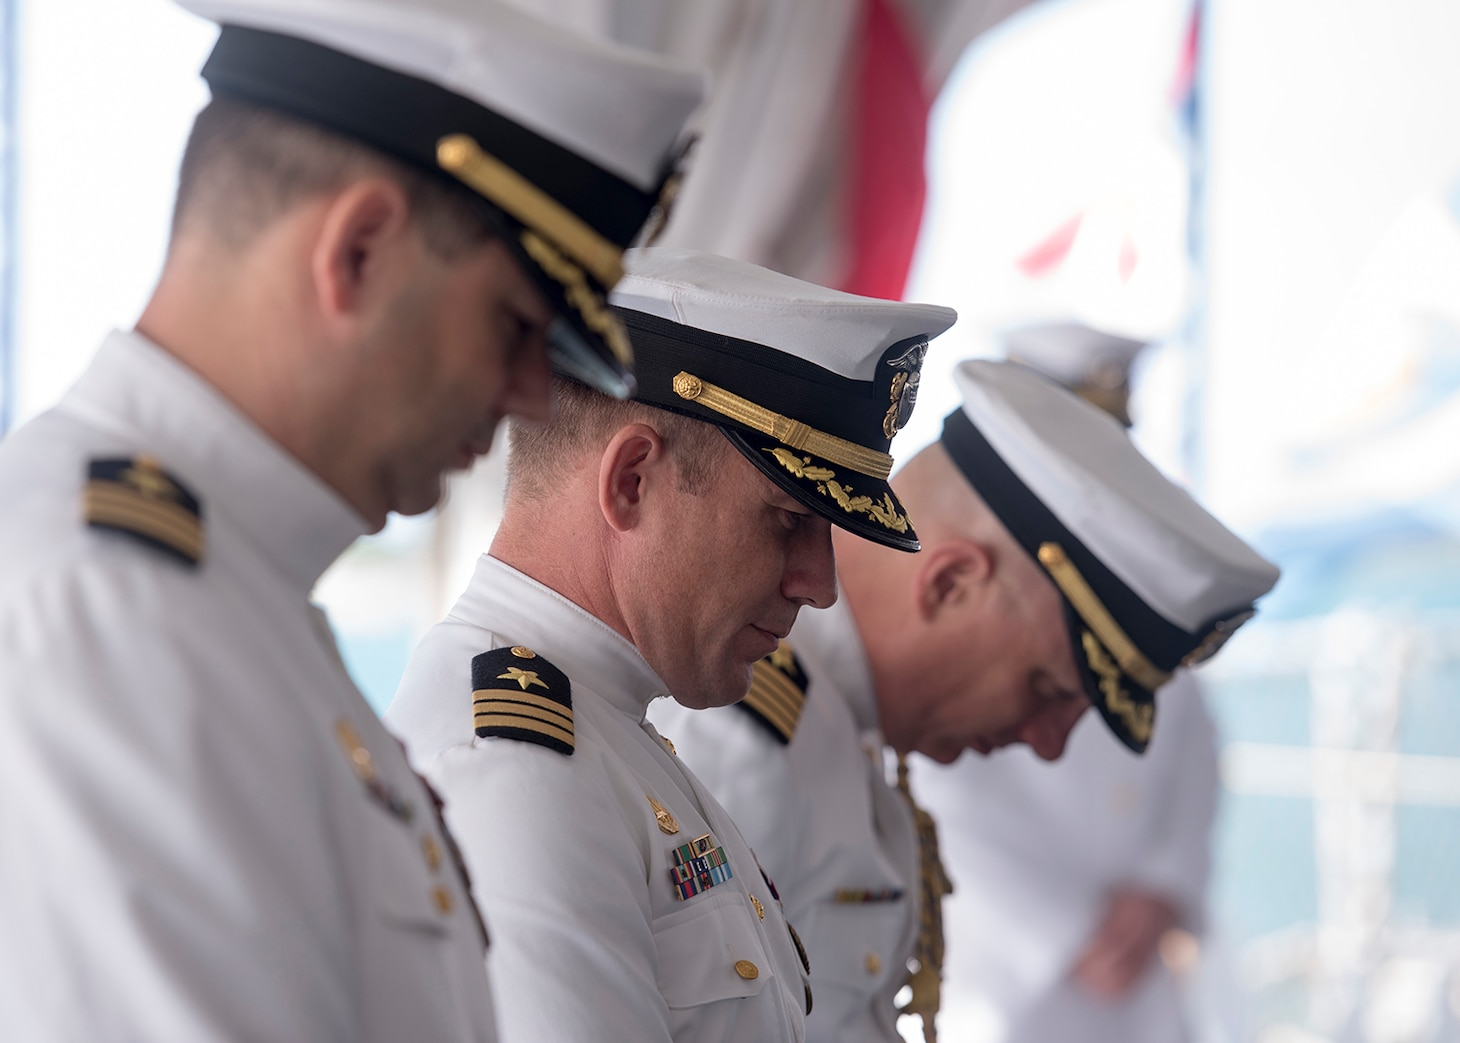 The official party bow for the invocation during the Naval Submarine Support Command (NSSC) Pearl Harbor change of command ceremony aboard the Battleship Missouri Memorial in Pearl Harbor, Hawaii.   (U.S. Navy photo by Mass Communication Specialist 2nd Class Michael Lee/Released)